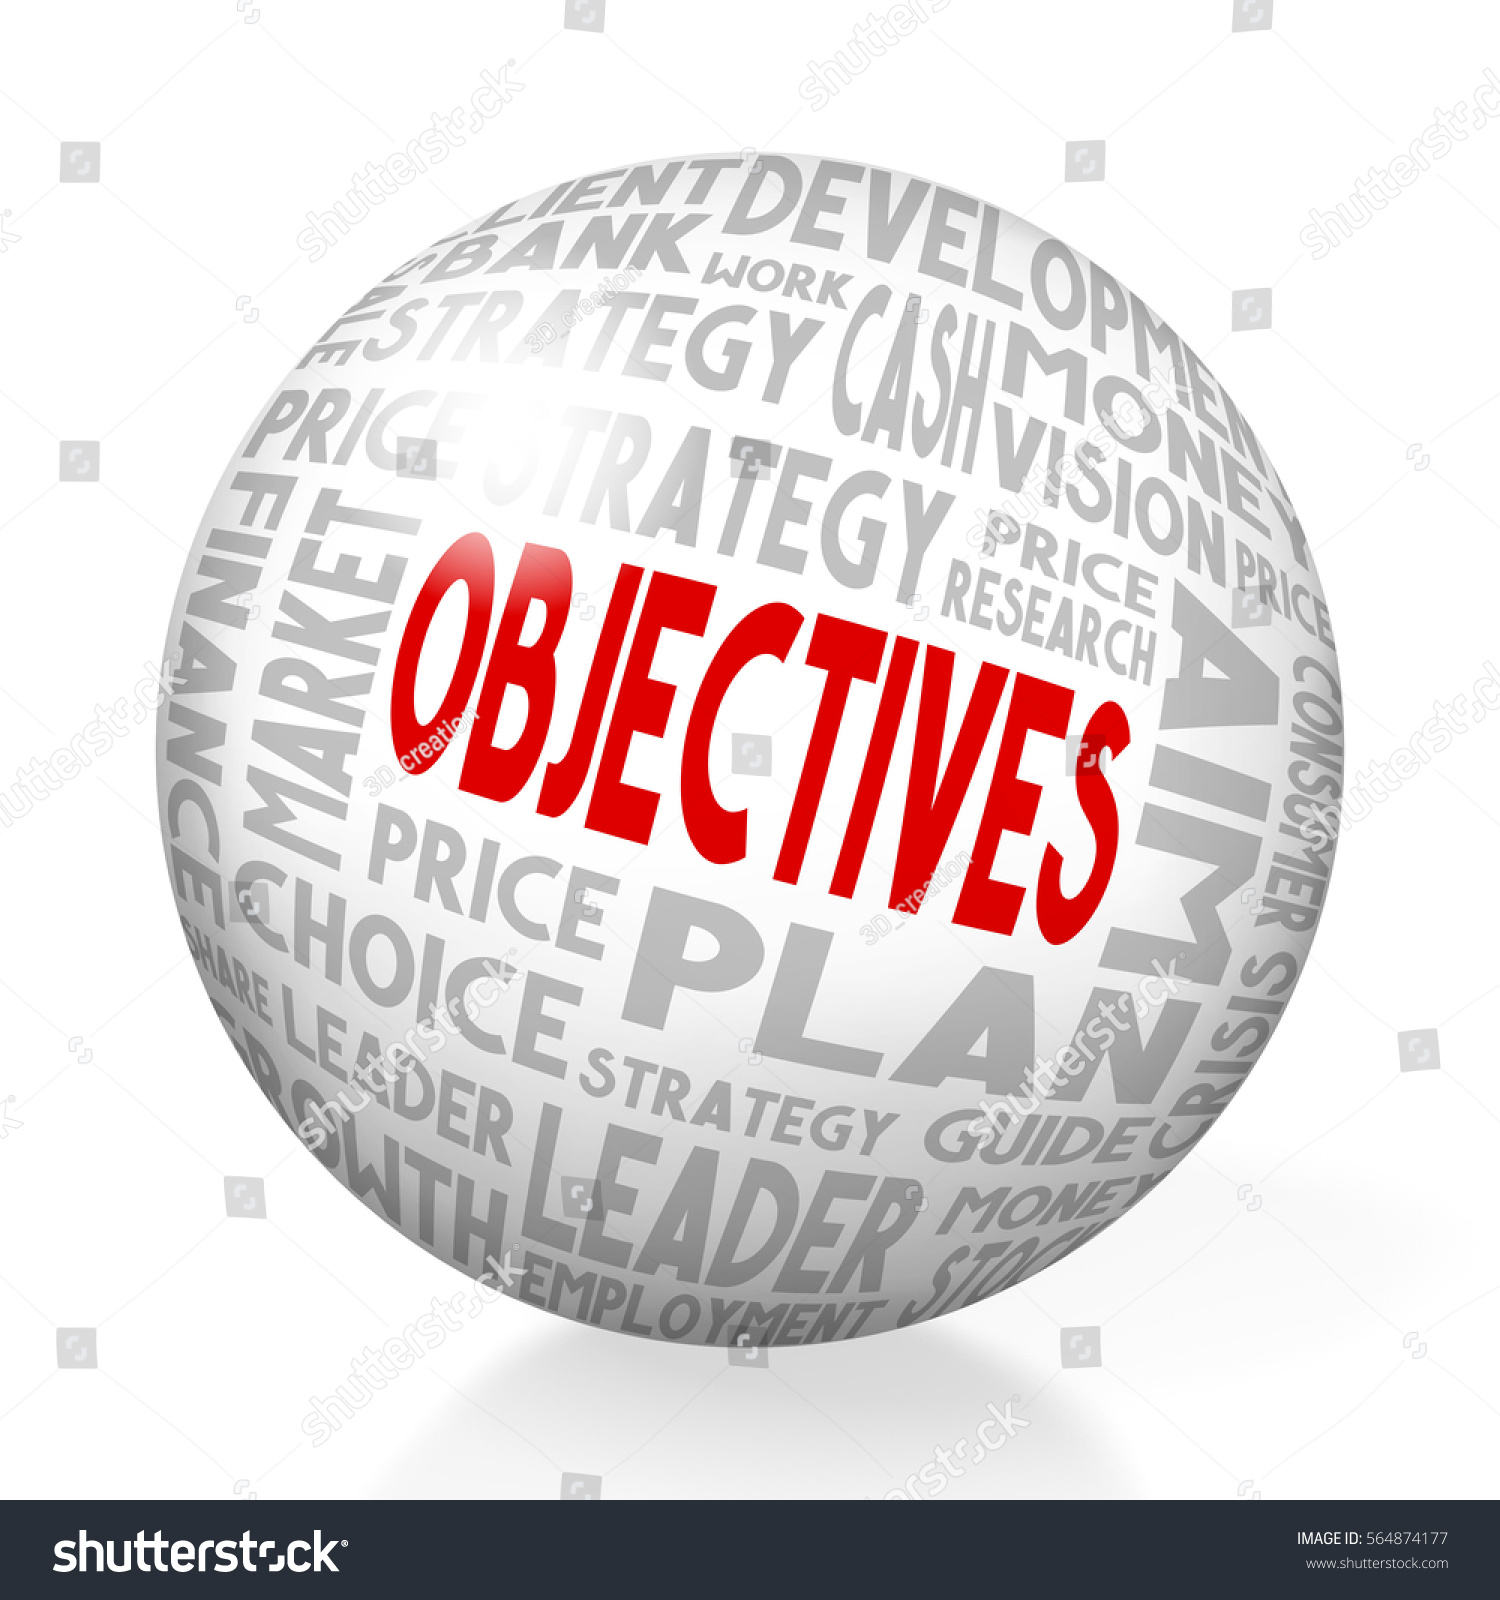 Pricing Objectives: 3d Illustration 3d Rendering Objectives Concept Stock